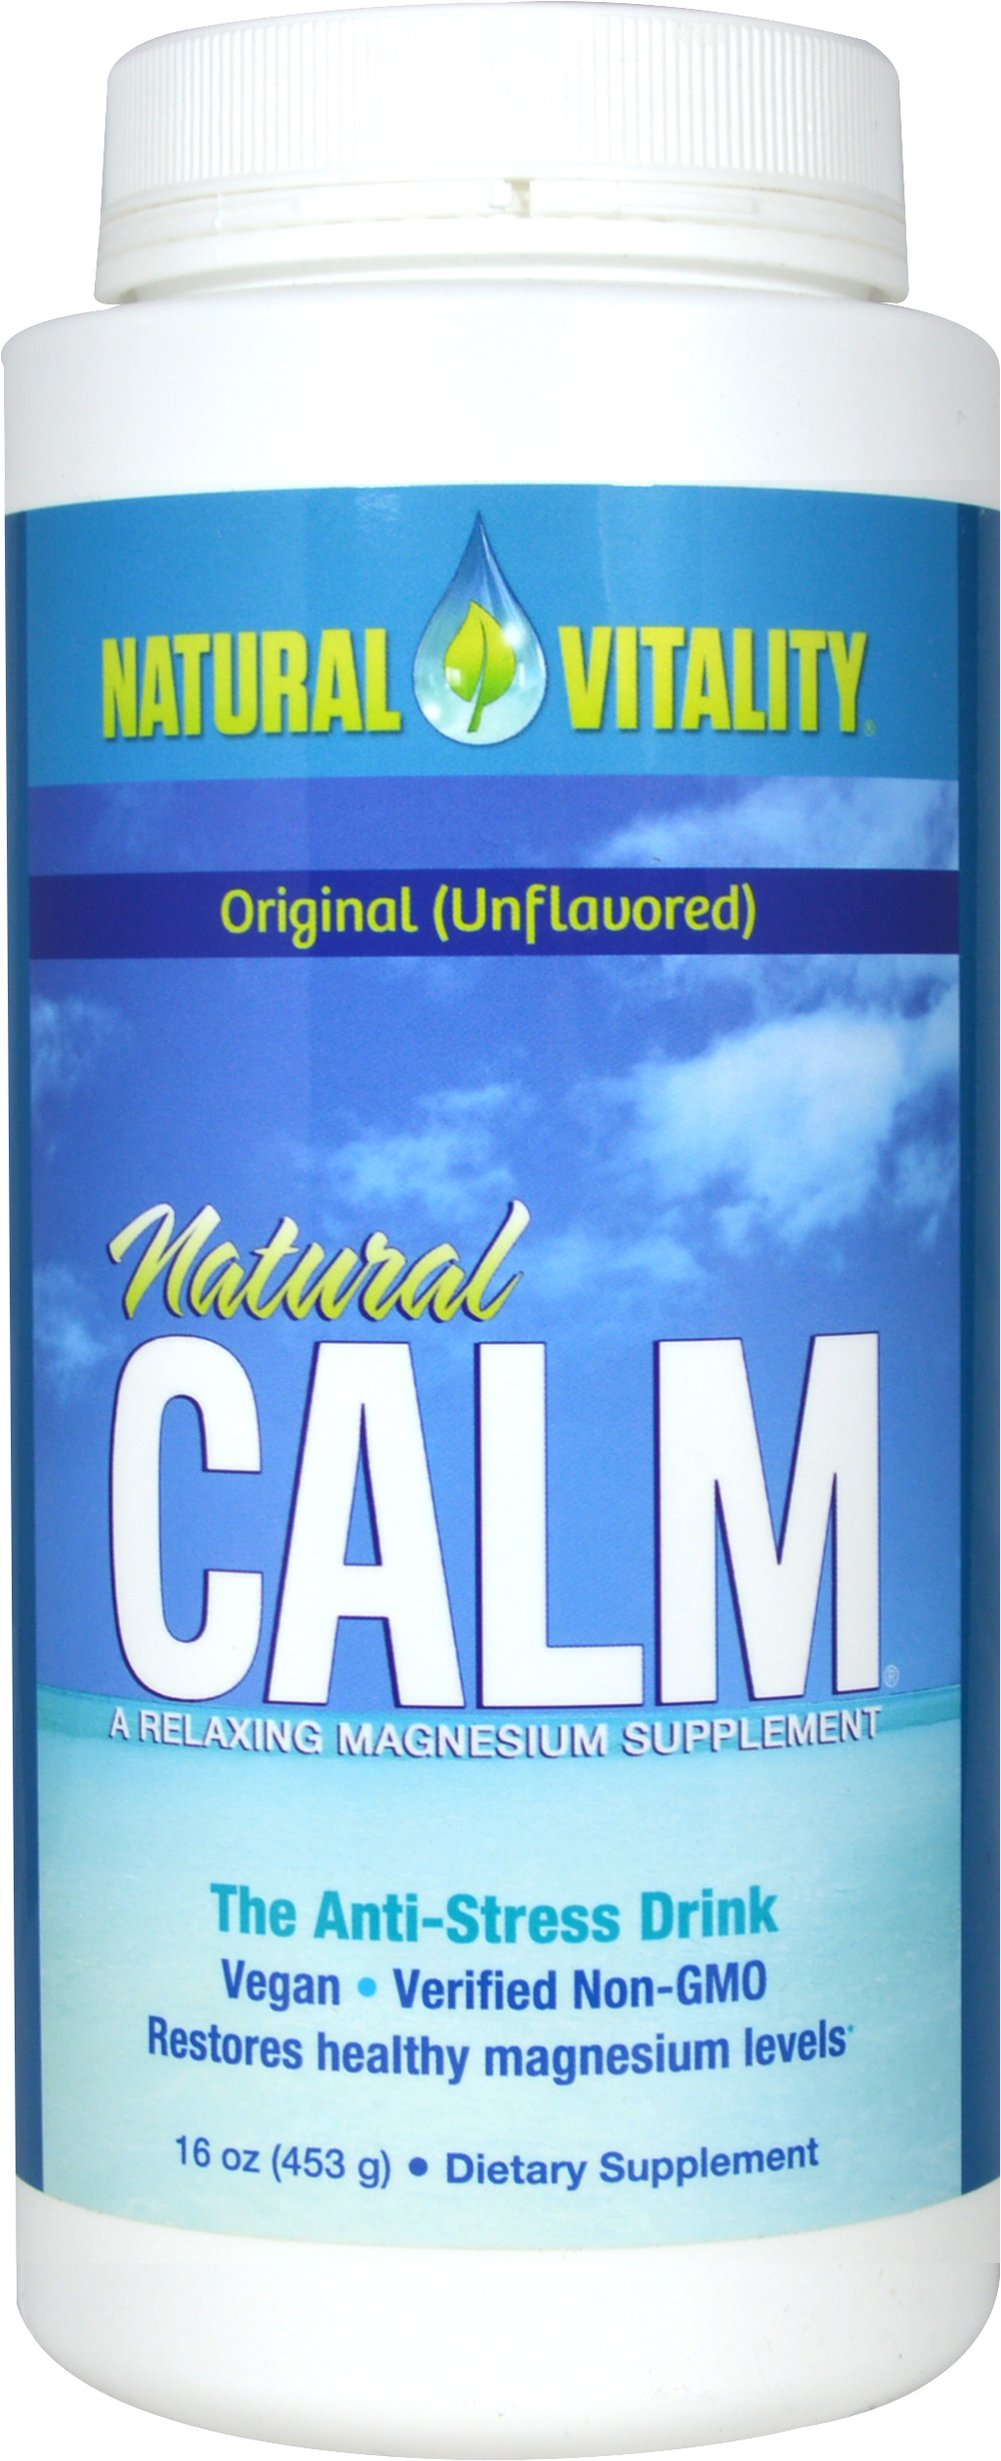 Natural Calm Original  <B>From the Manufacturer's Label:</B> <P>Award-winning Natural Calm is the best-selling ionic magnesium supplement in the natural products market.</P>  16 oz Powder  $23.99